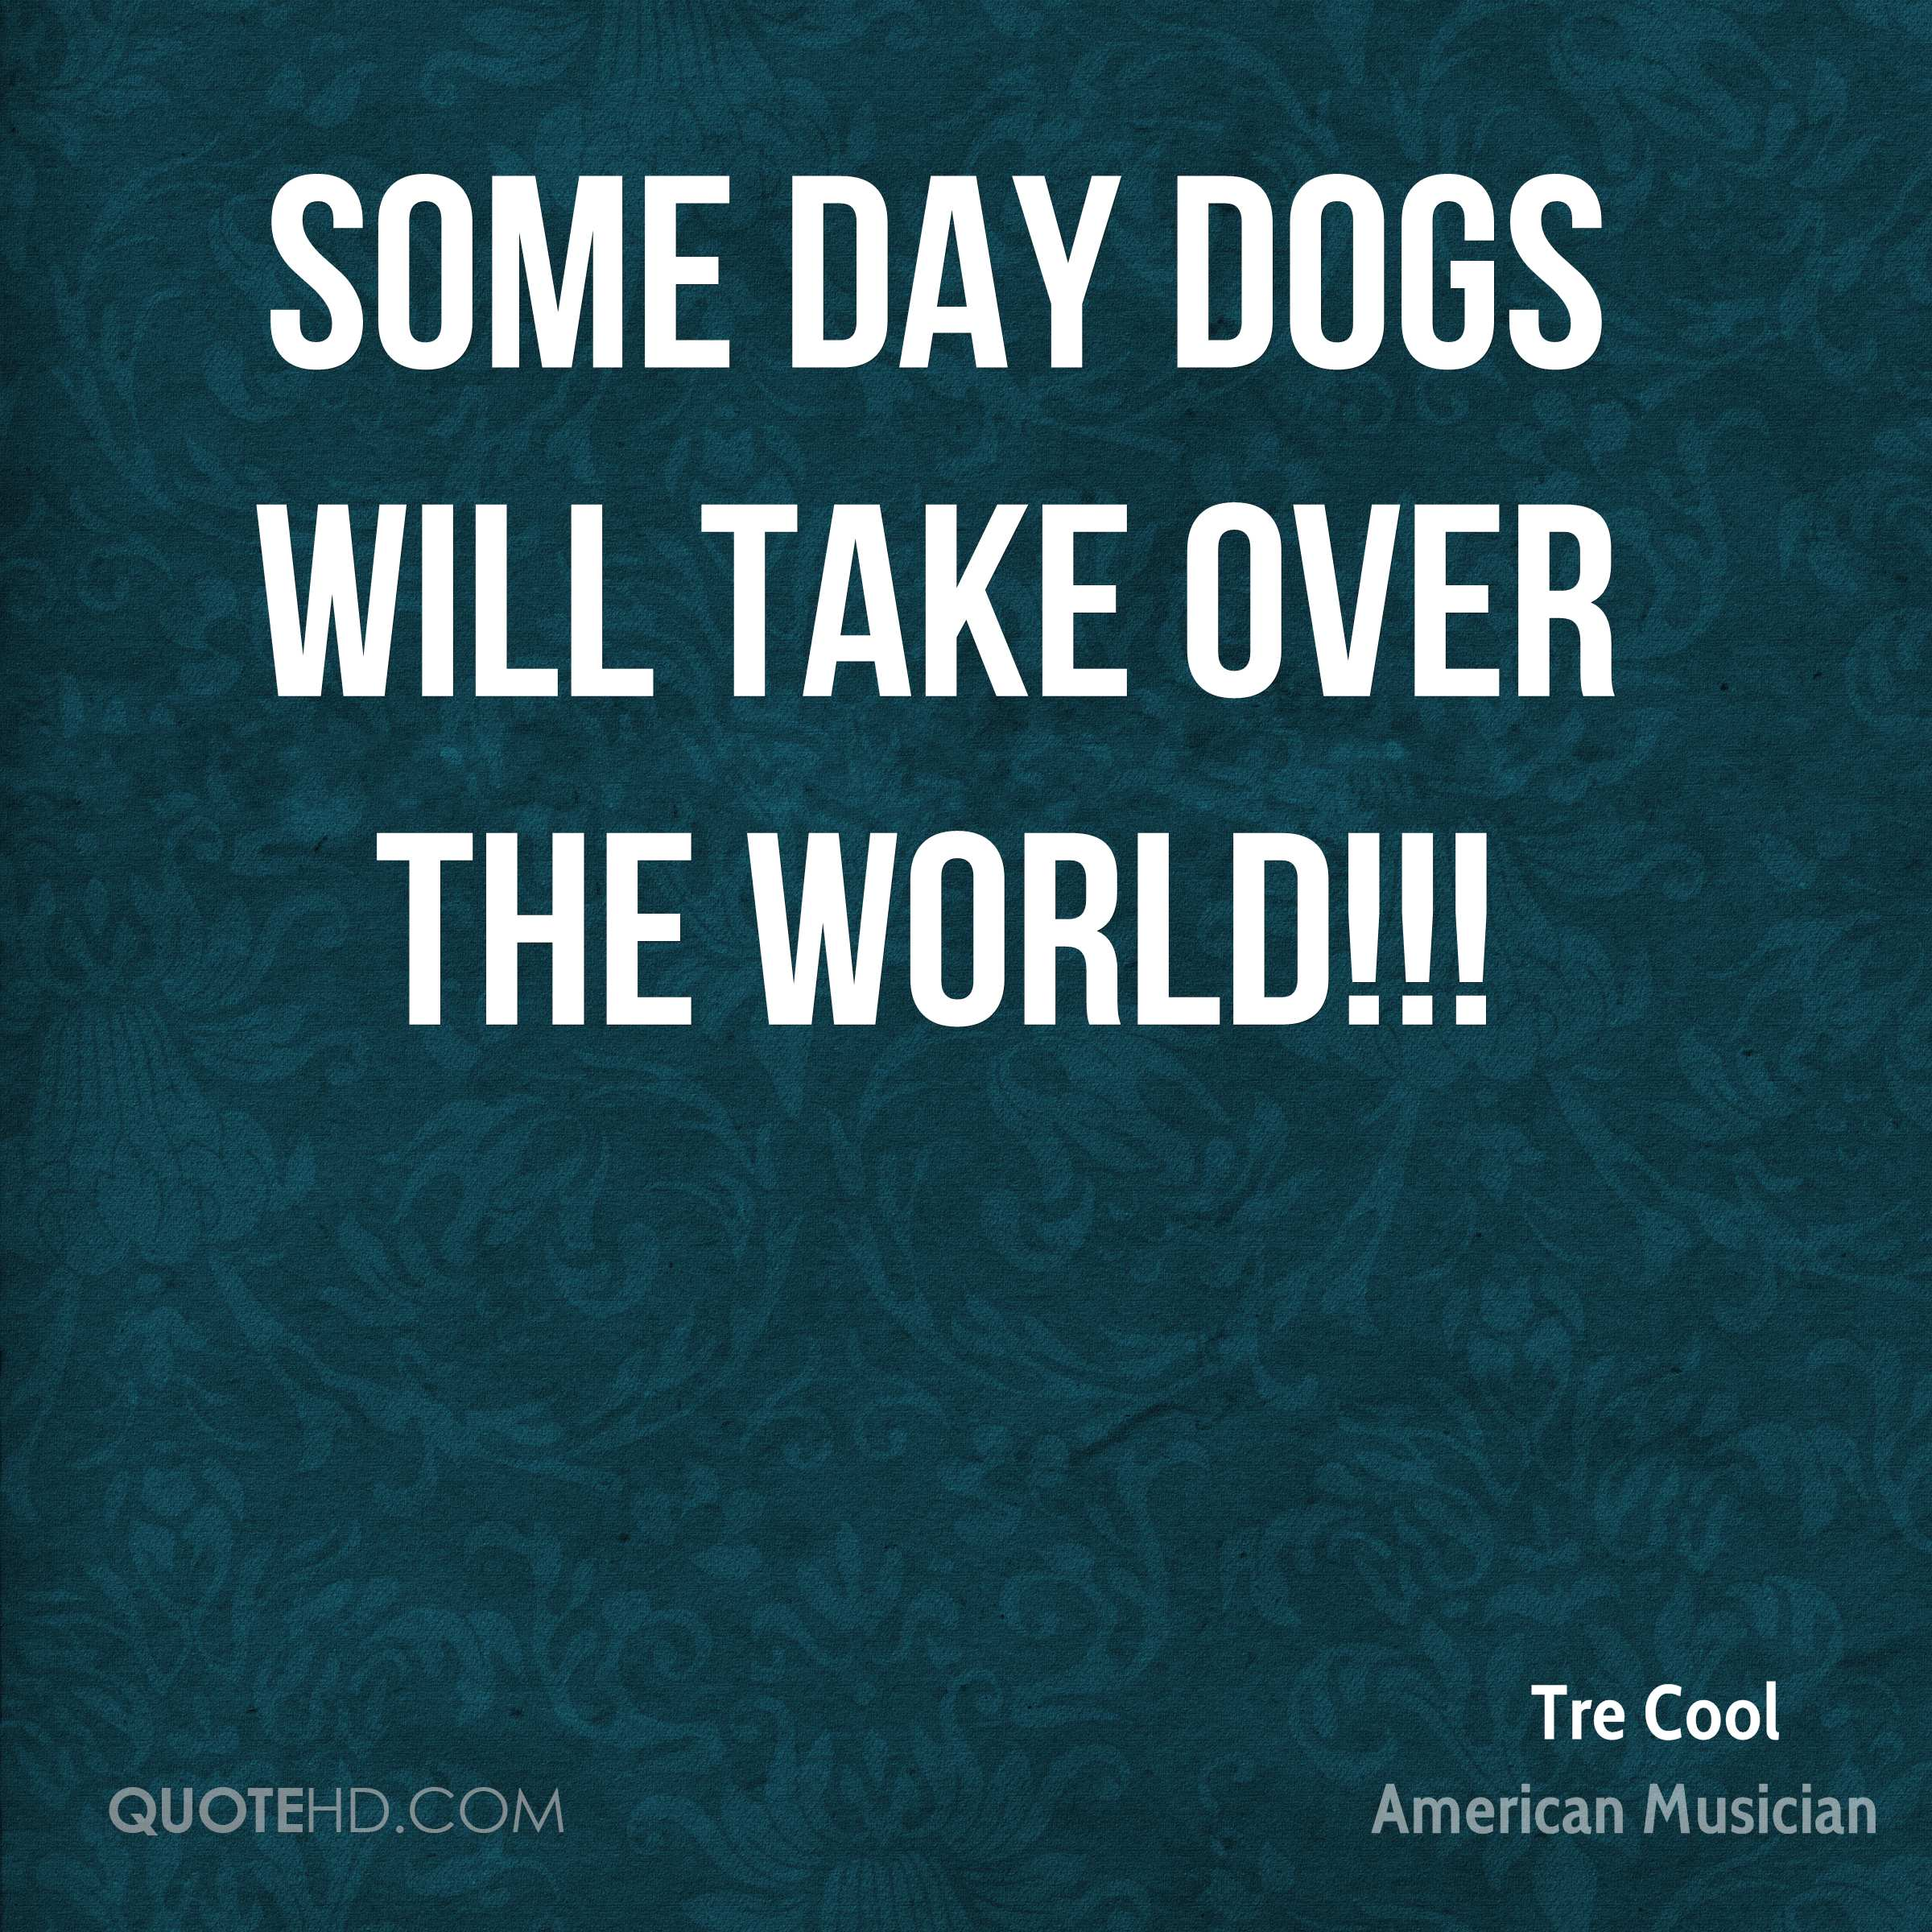 Some day dogs will take over the world!!!